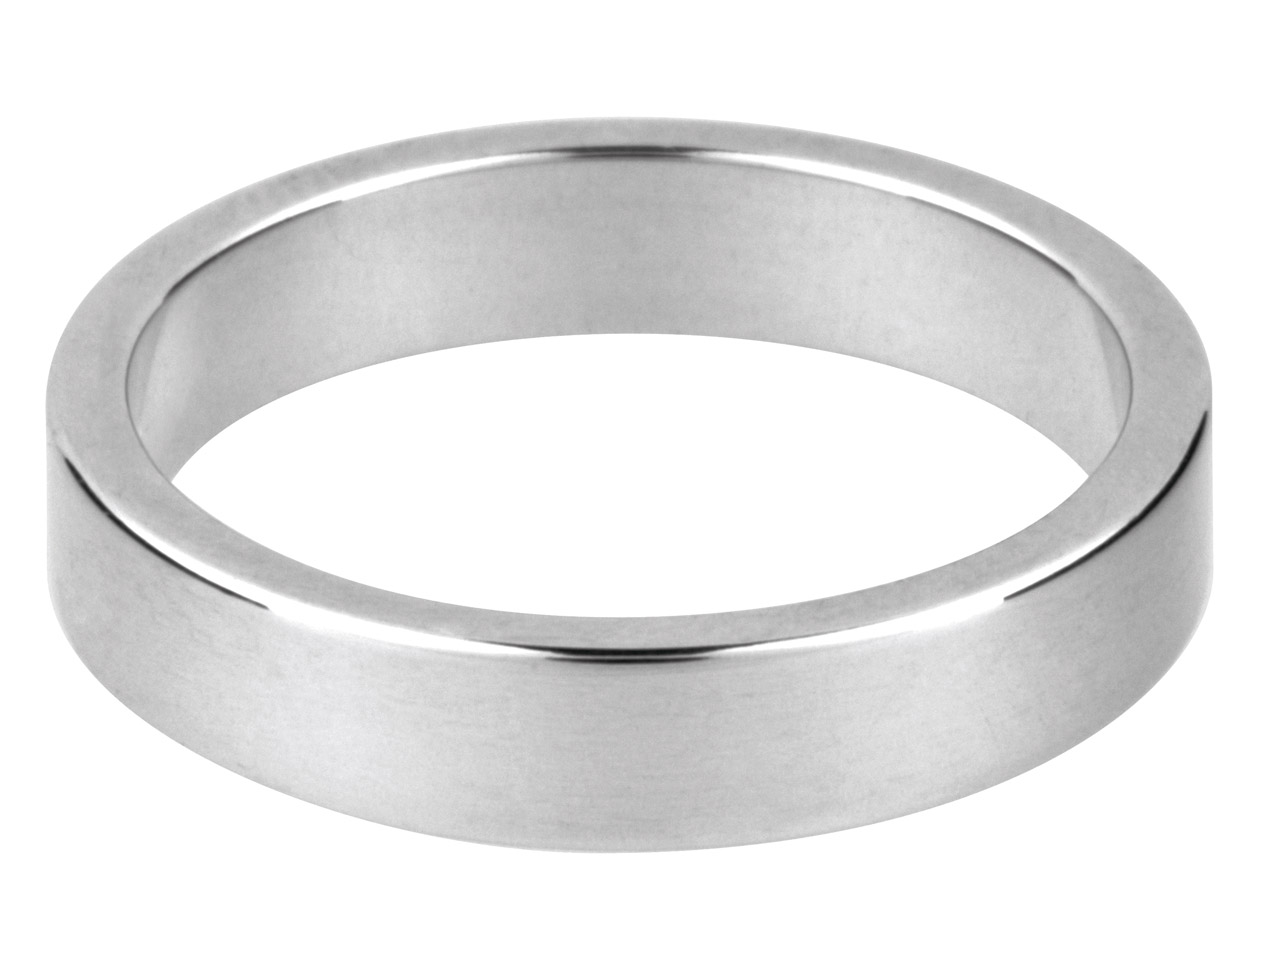 Palladium 500 Flat Wedding Ring    5.0mm O 3.9gms Medium Weight       Hallmarked Wall Thickness 1.14mm